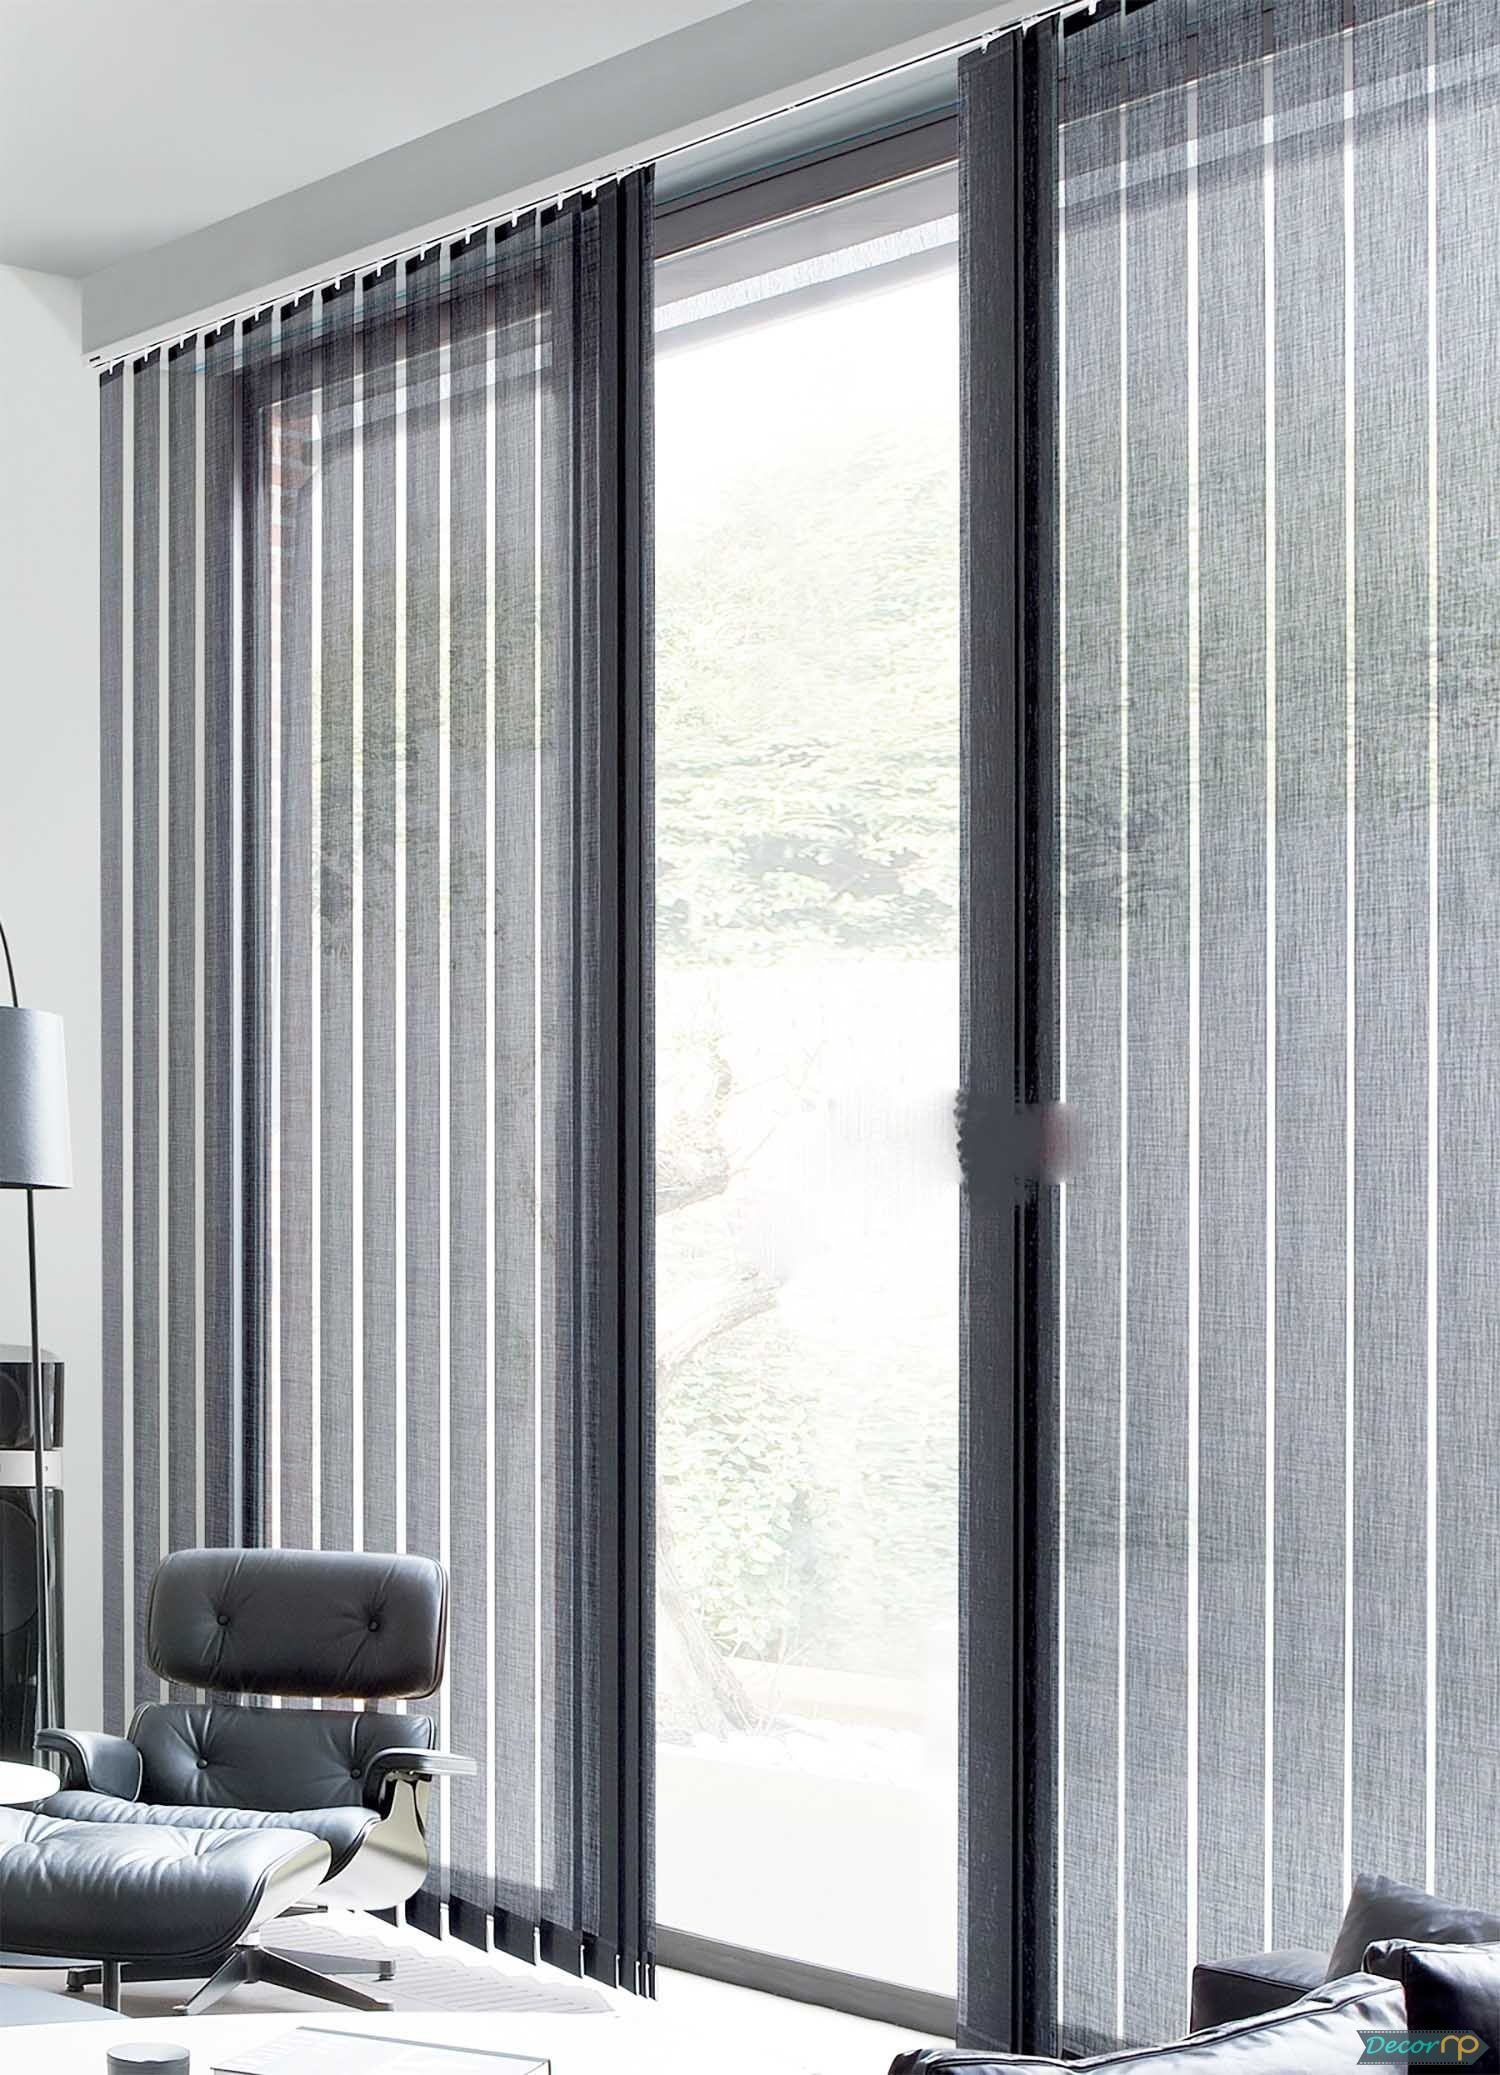 9 Staggering Useful Ideas Farmhouse Blinds And Curtains Brown Kitchen Blinds Outdoor Blinds Awesom Sliding Door Blinds Sliding Glass Door Blinds Modern Blinds